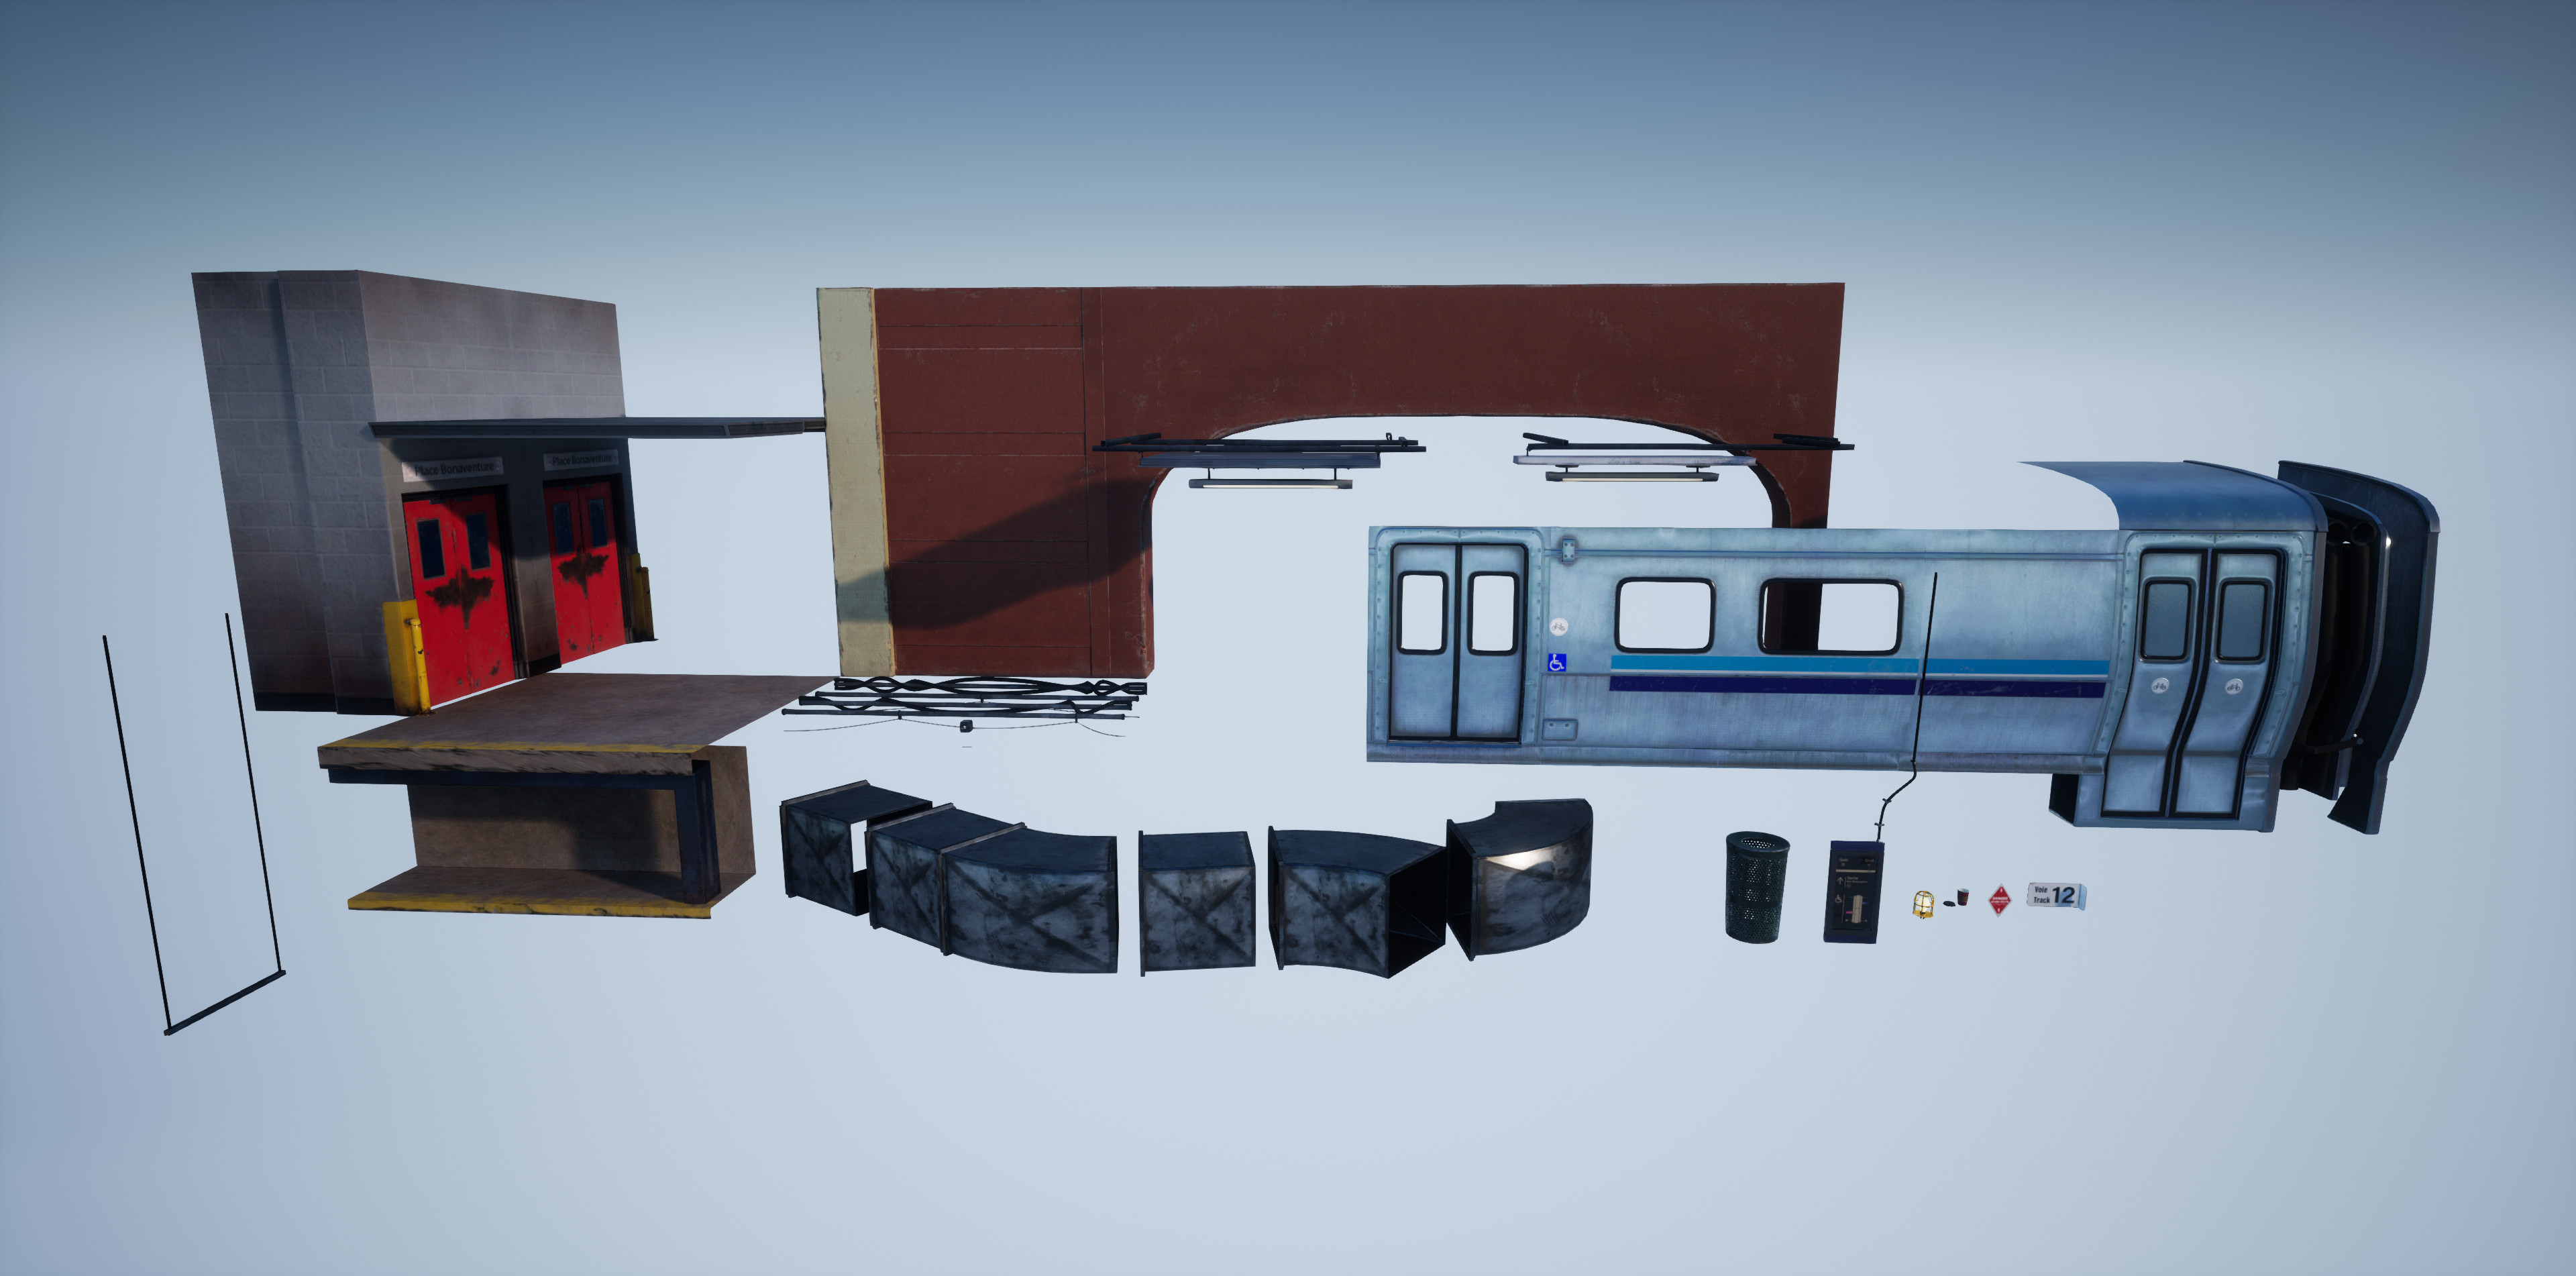 Overview of all the static meshes used in the scene